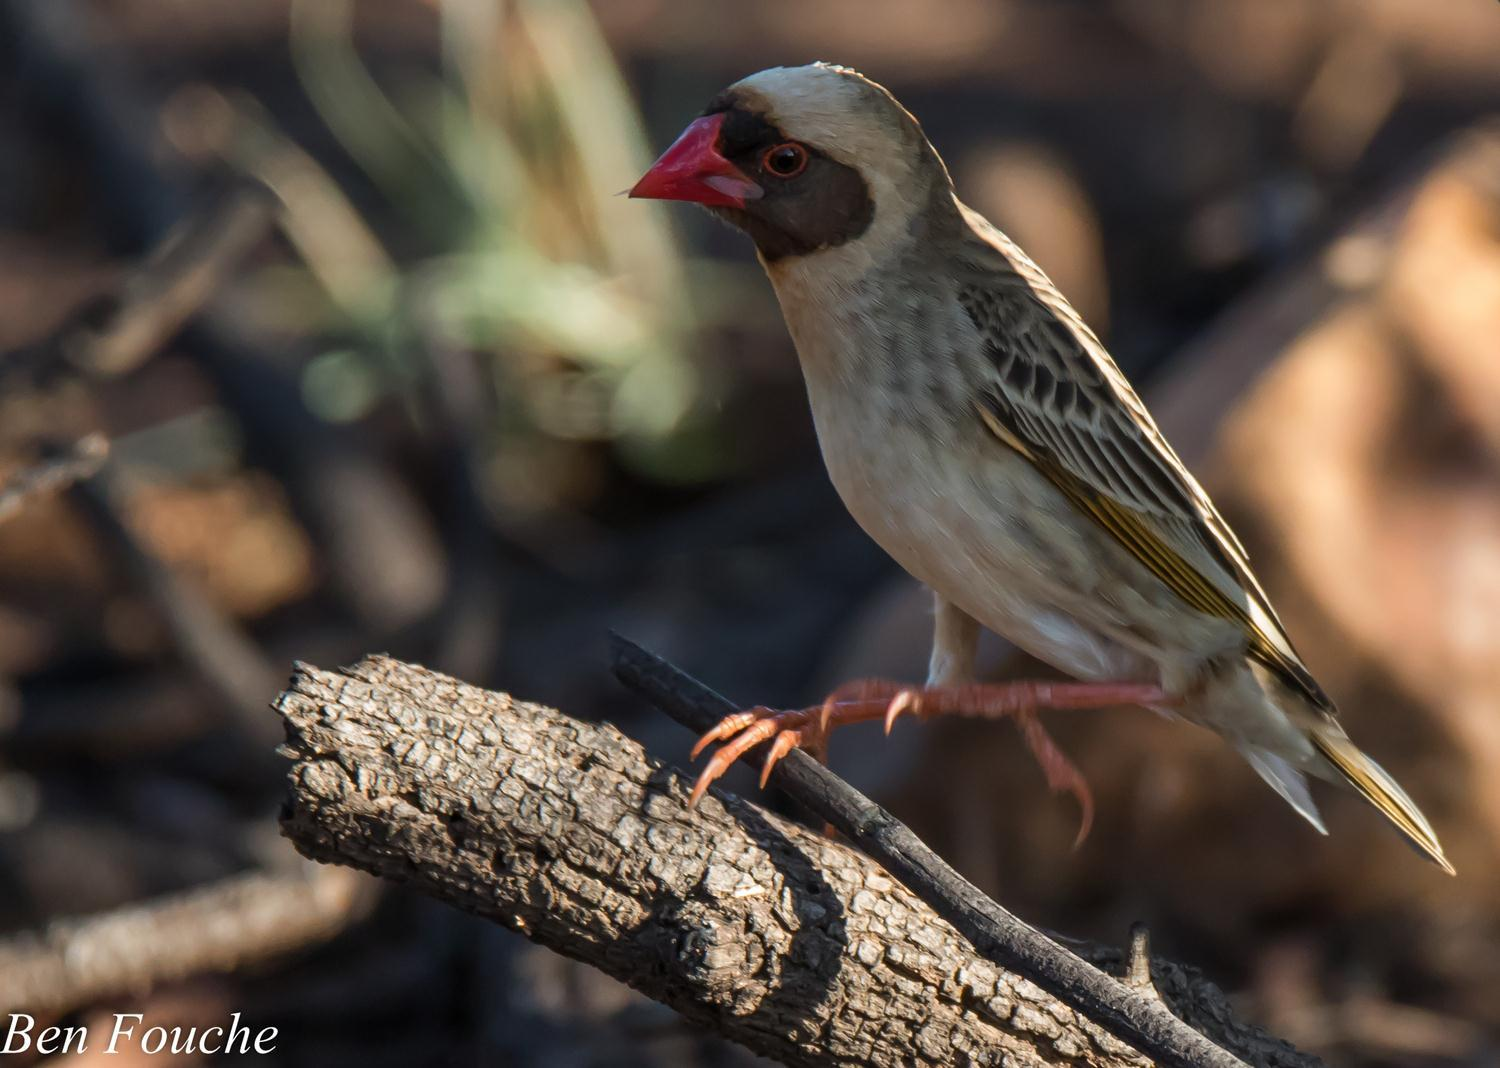 Red-billed Quelea